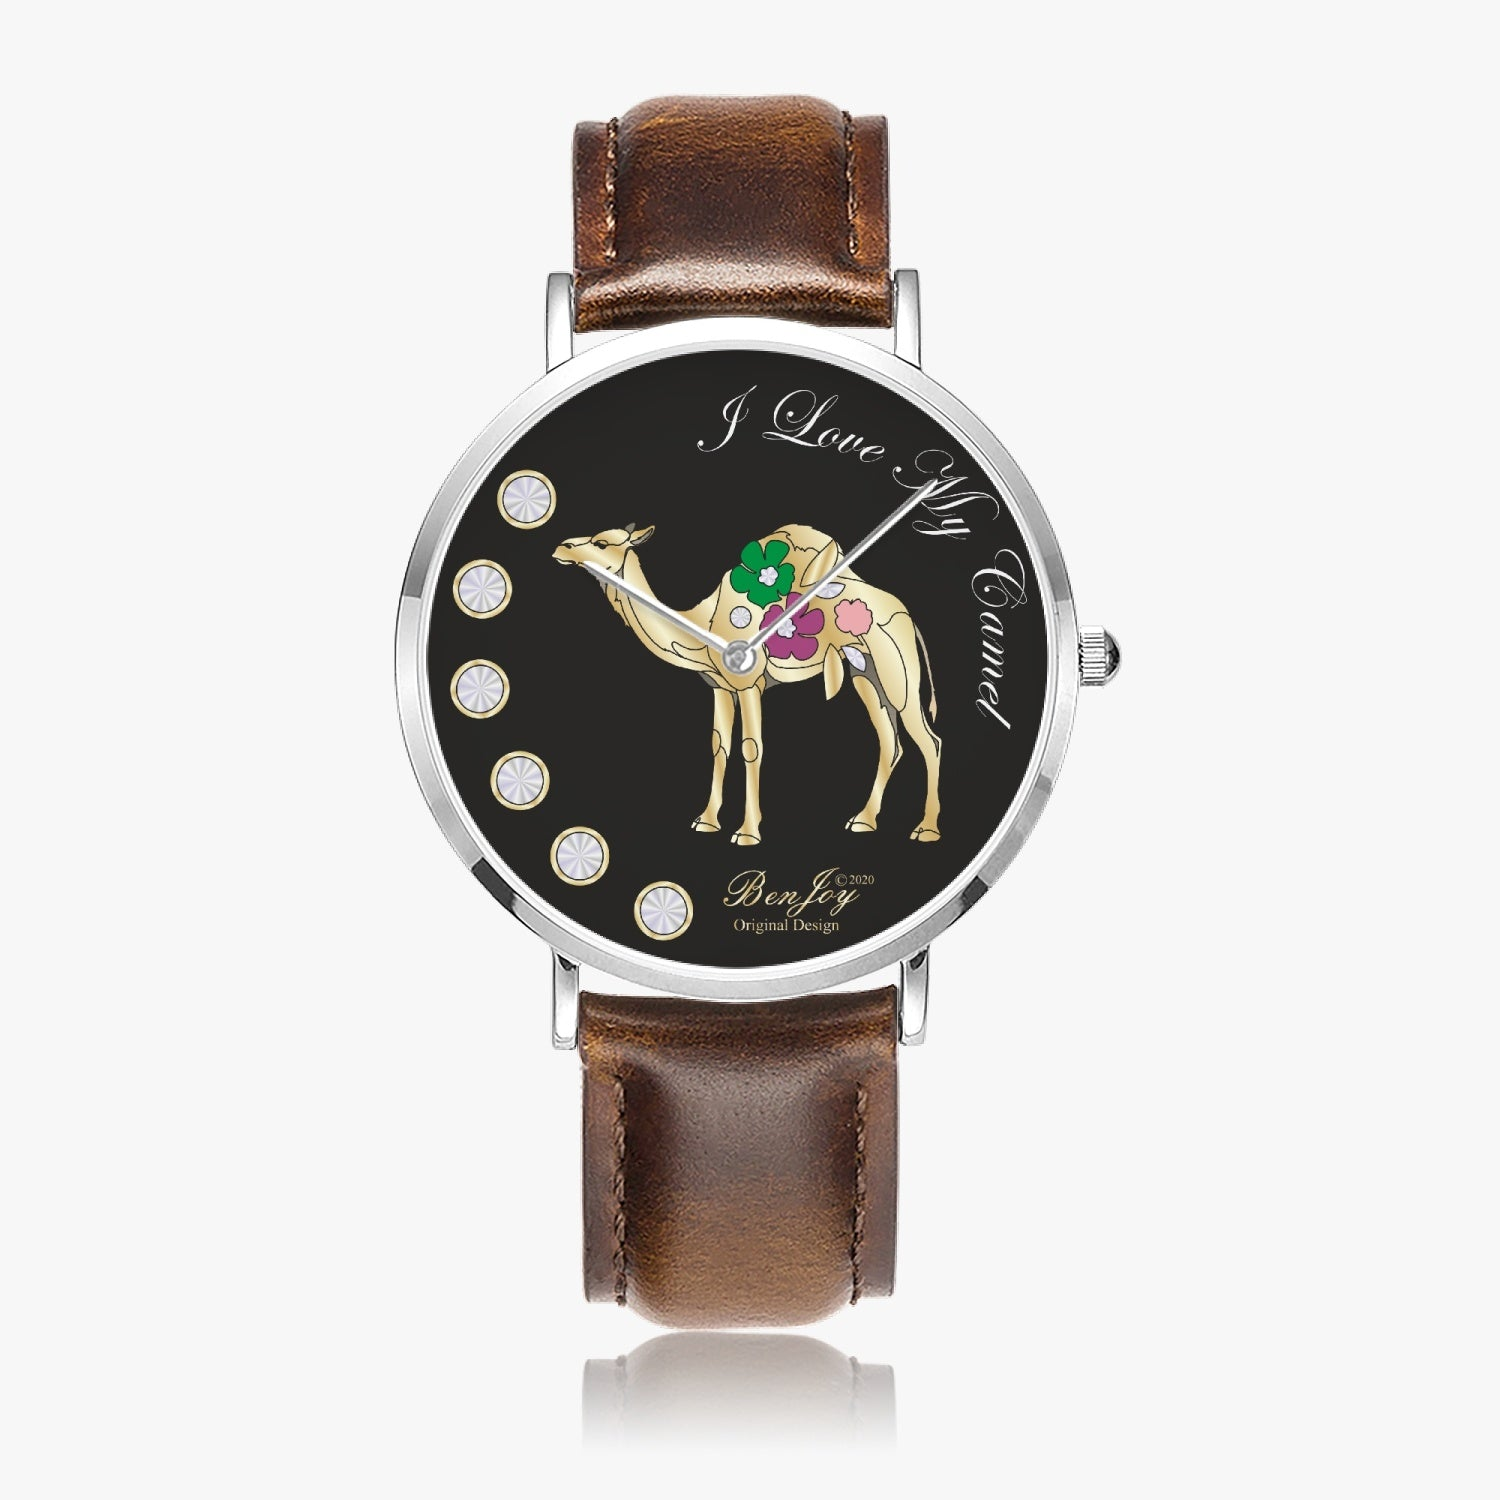 I Love My Camel Leather Watch By BenJoy